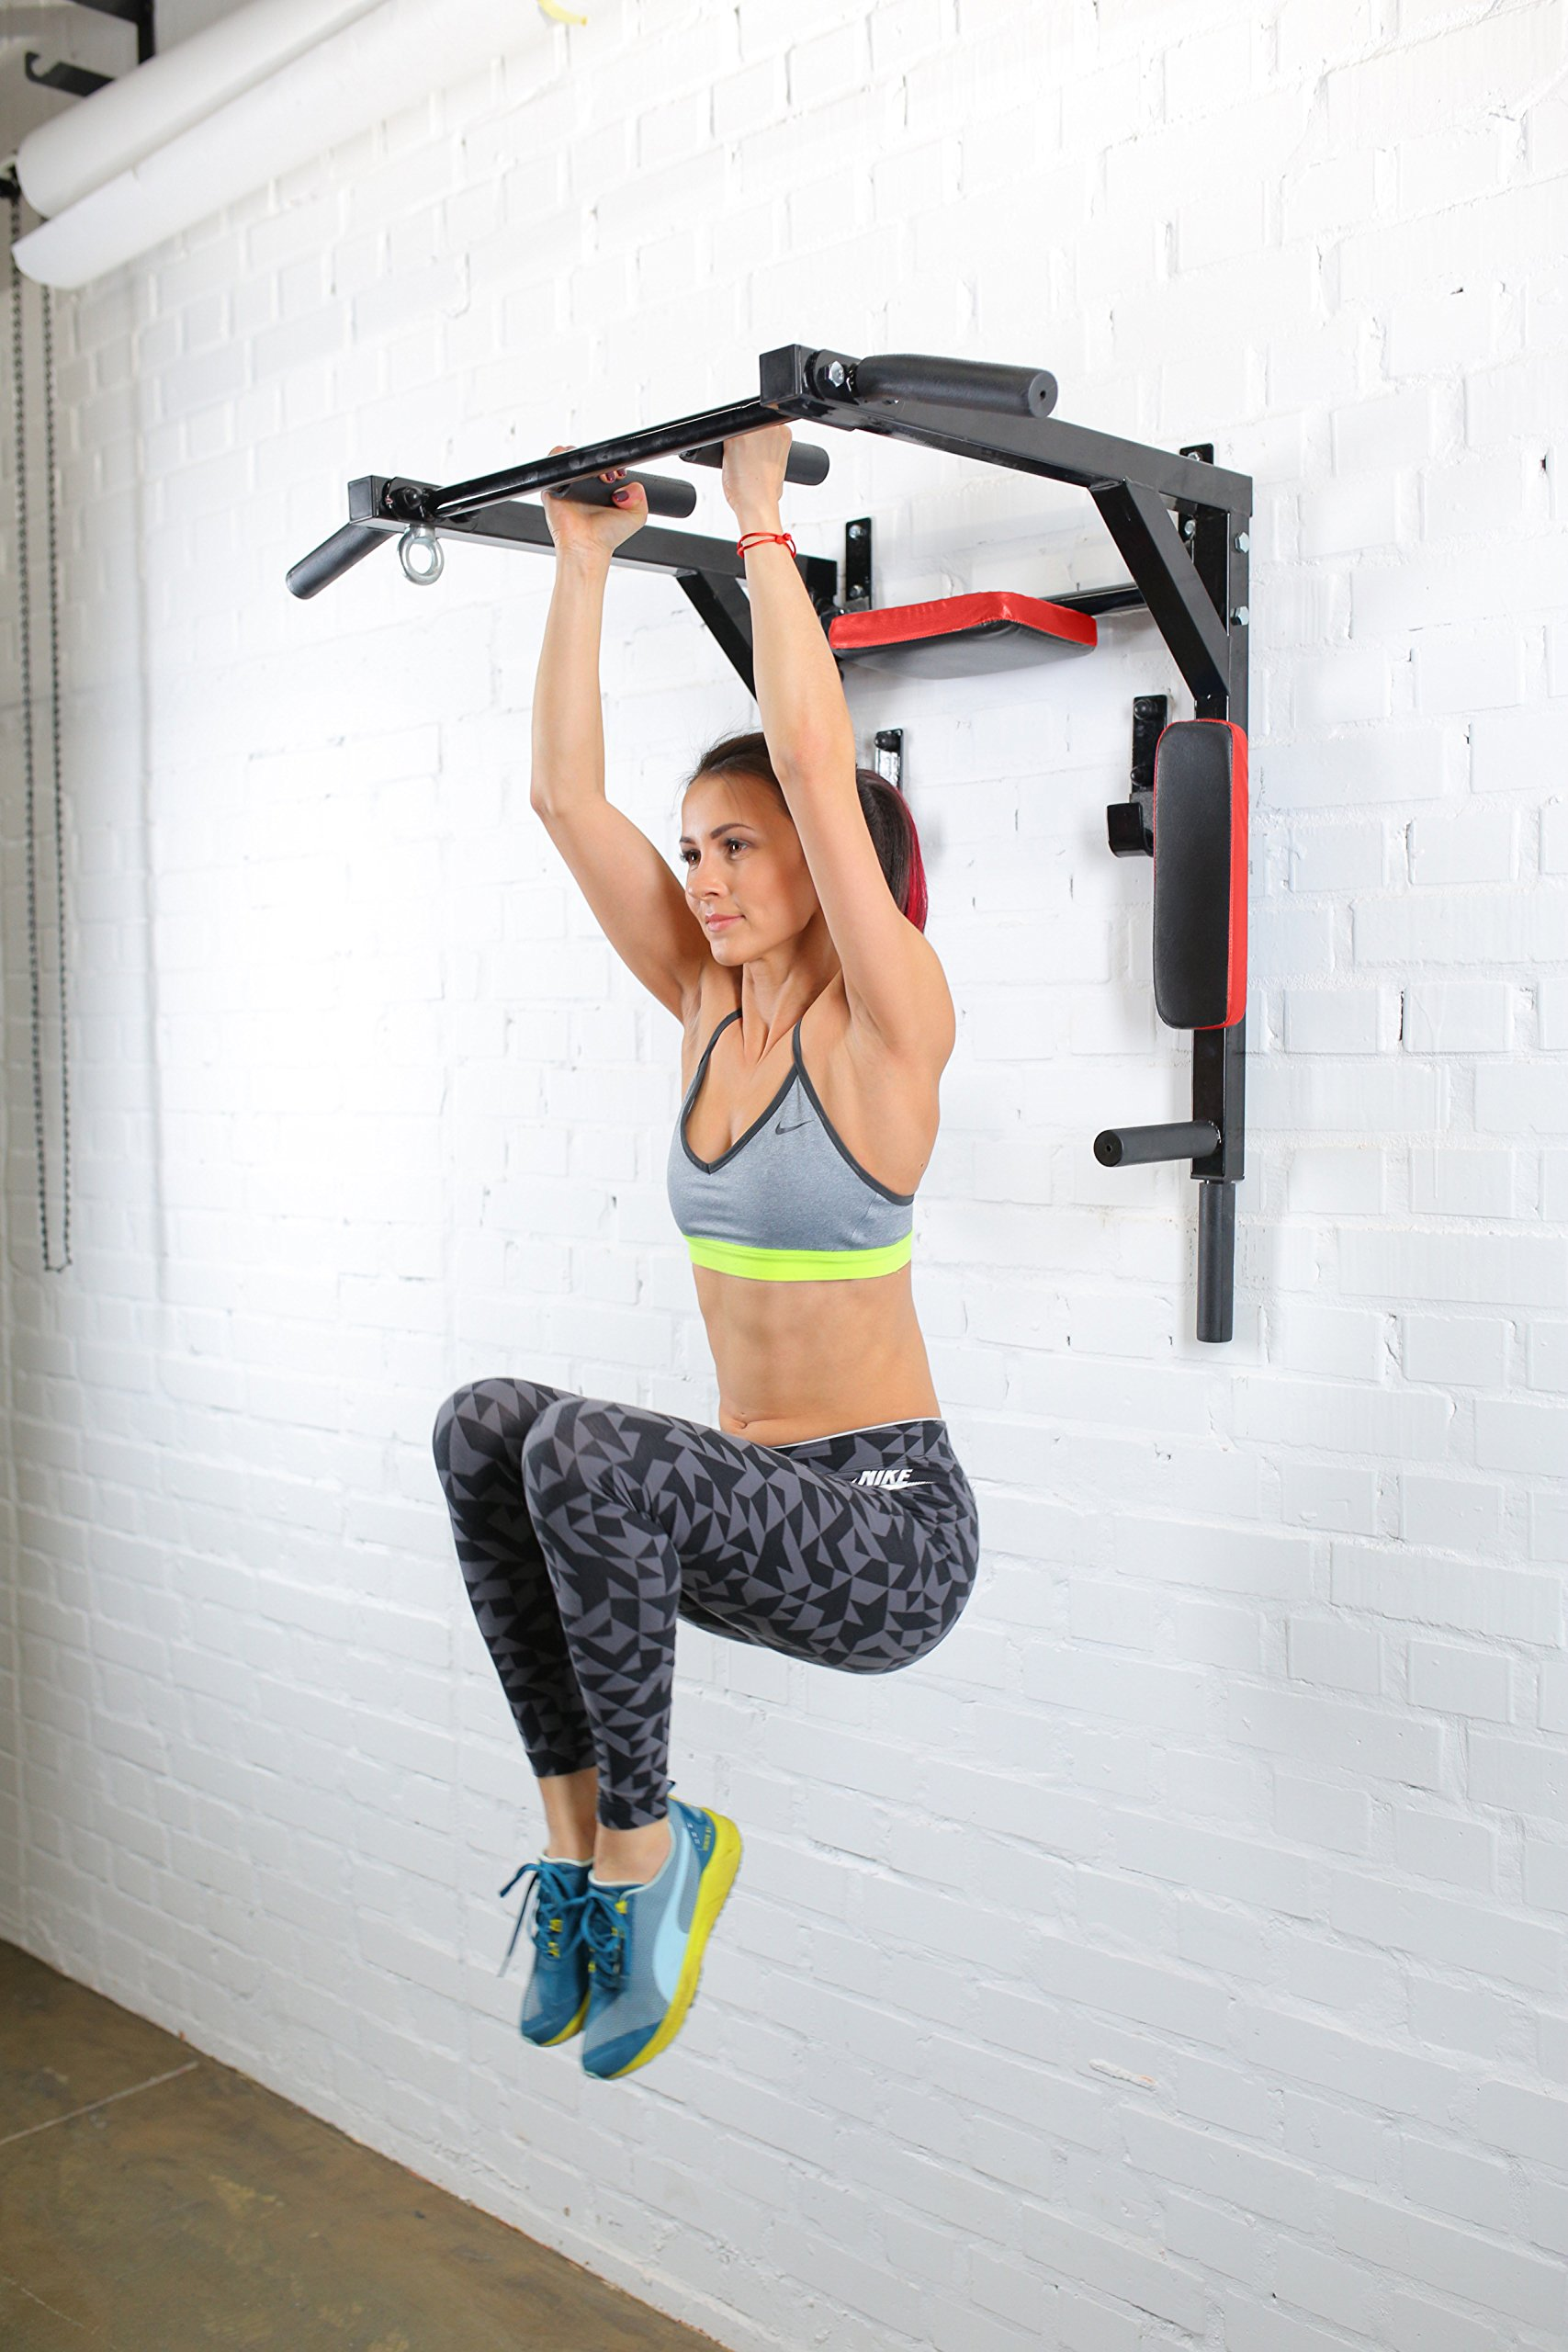 Wall Mounted Pull Up Bar - Pullup Bar Wall Mount - Chin Up Bar - Pull Up Bars and Dip Bar - Pullup and Dip Bar - Dip Station Pull Bar - Pullup Bars Outdoor and Home Room or Garage Gym Multi Grip - Pul by BAR2FIT QUALITY SPORTS EQUIPMENT (Image #8)